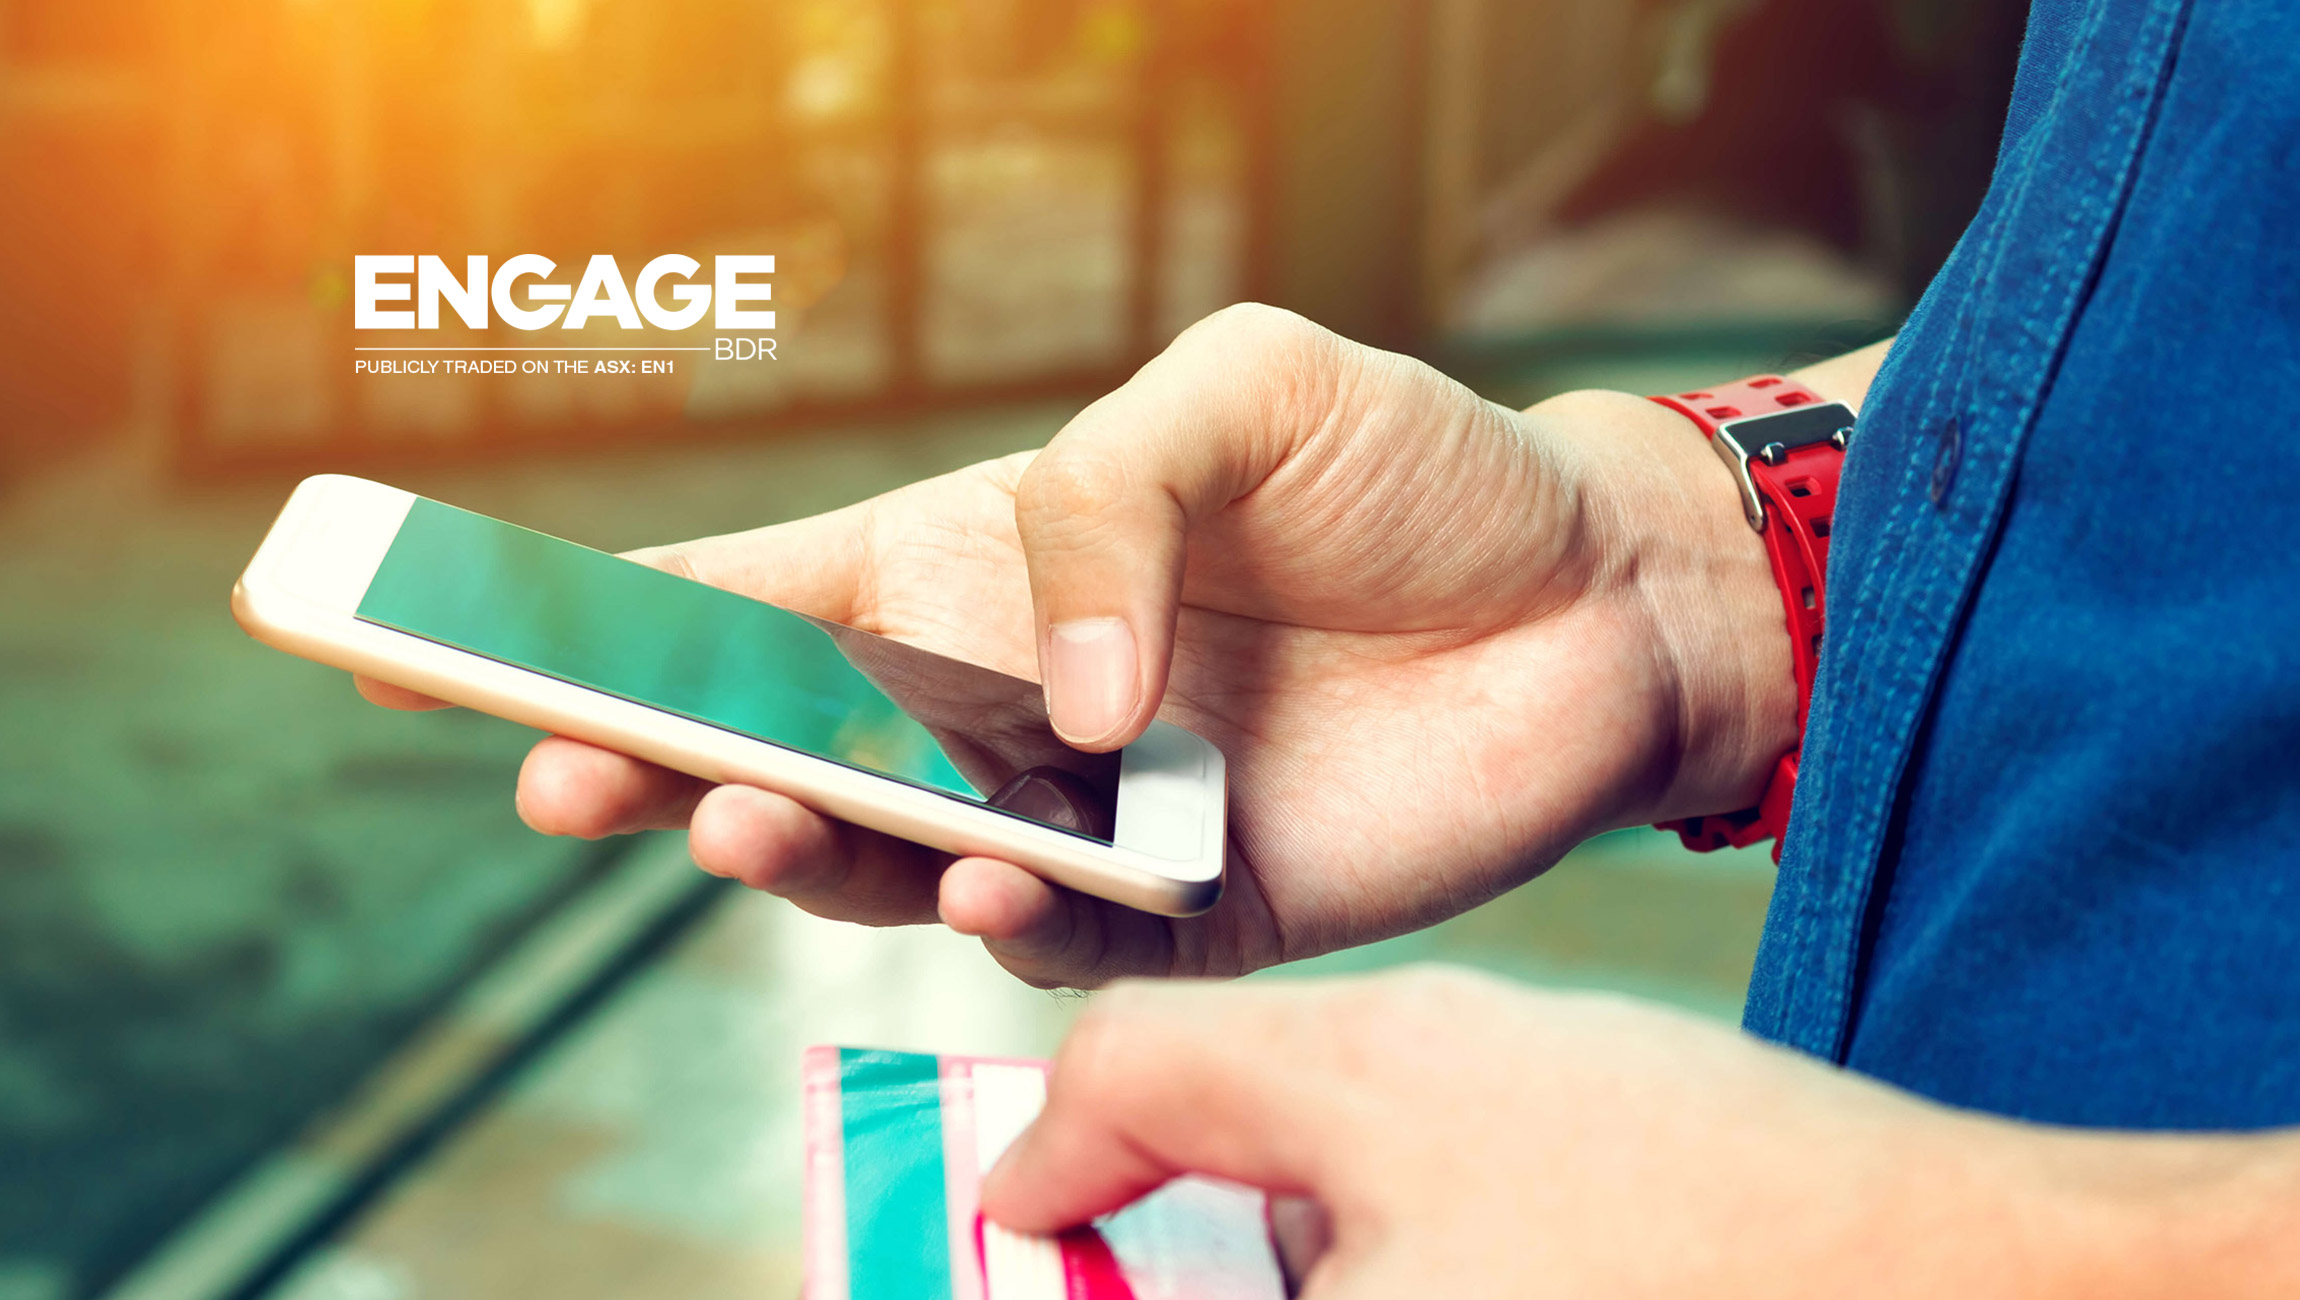 engage:BDR Enters into New Programmatic Advertising Agreements with Two of Asia's Largest Programmatic Advertising Companies